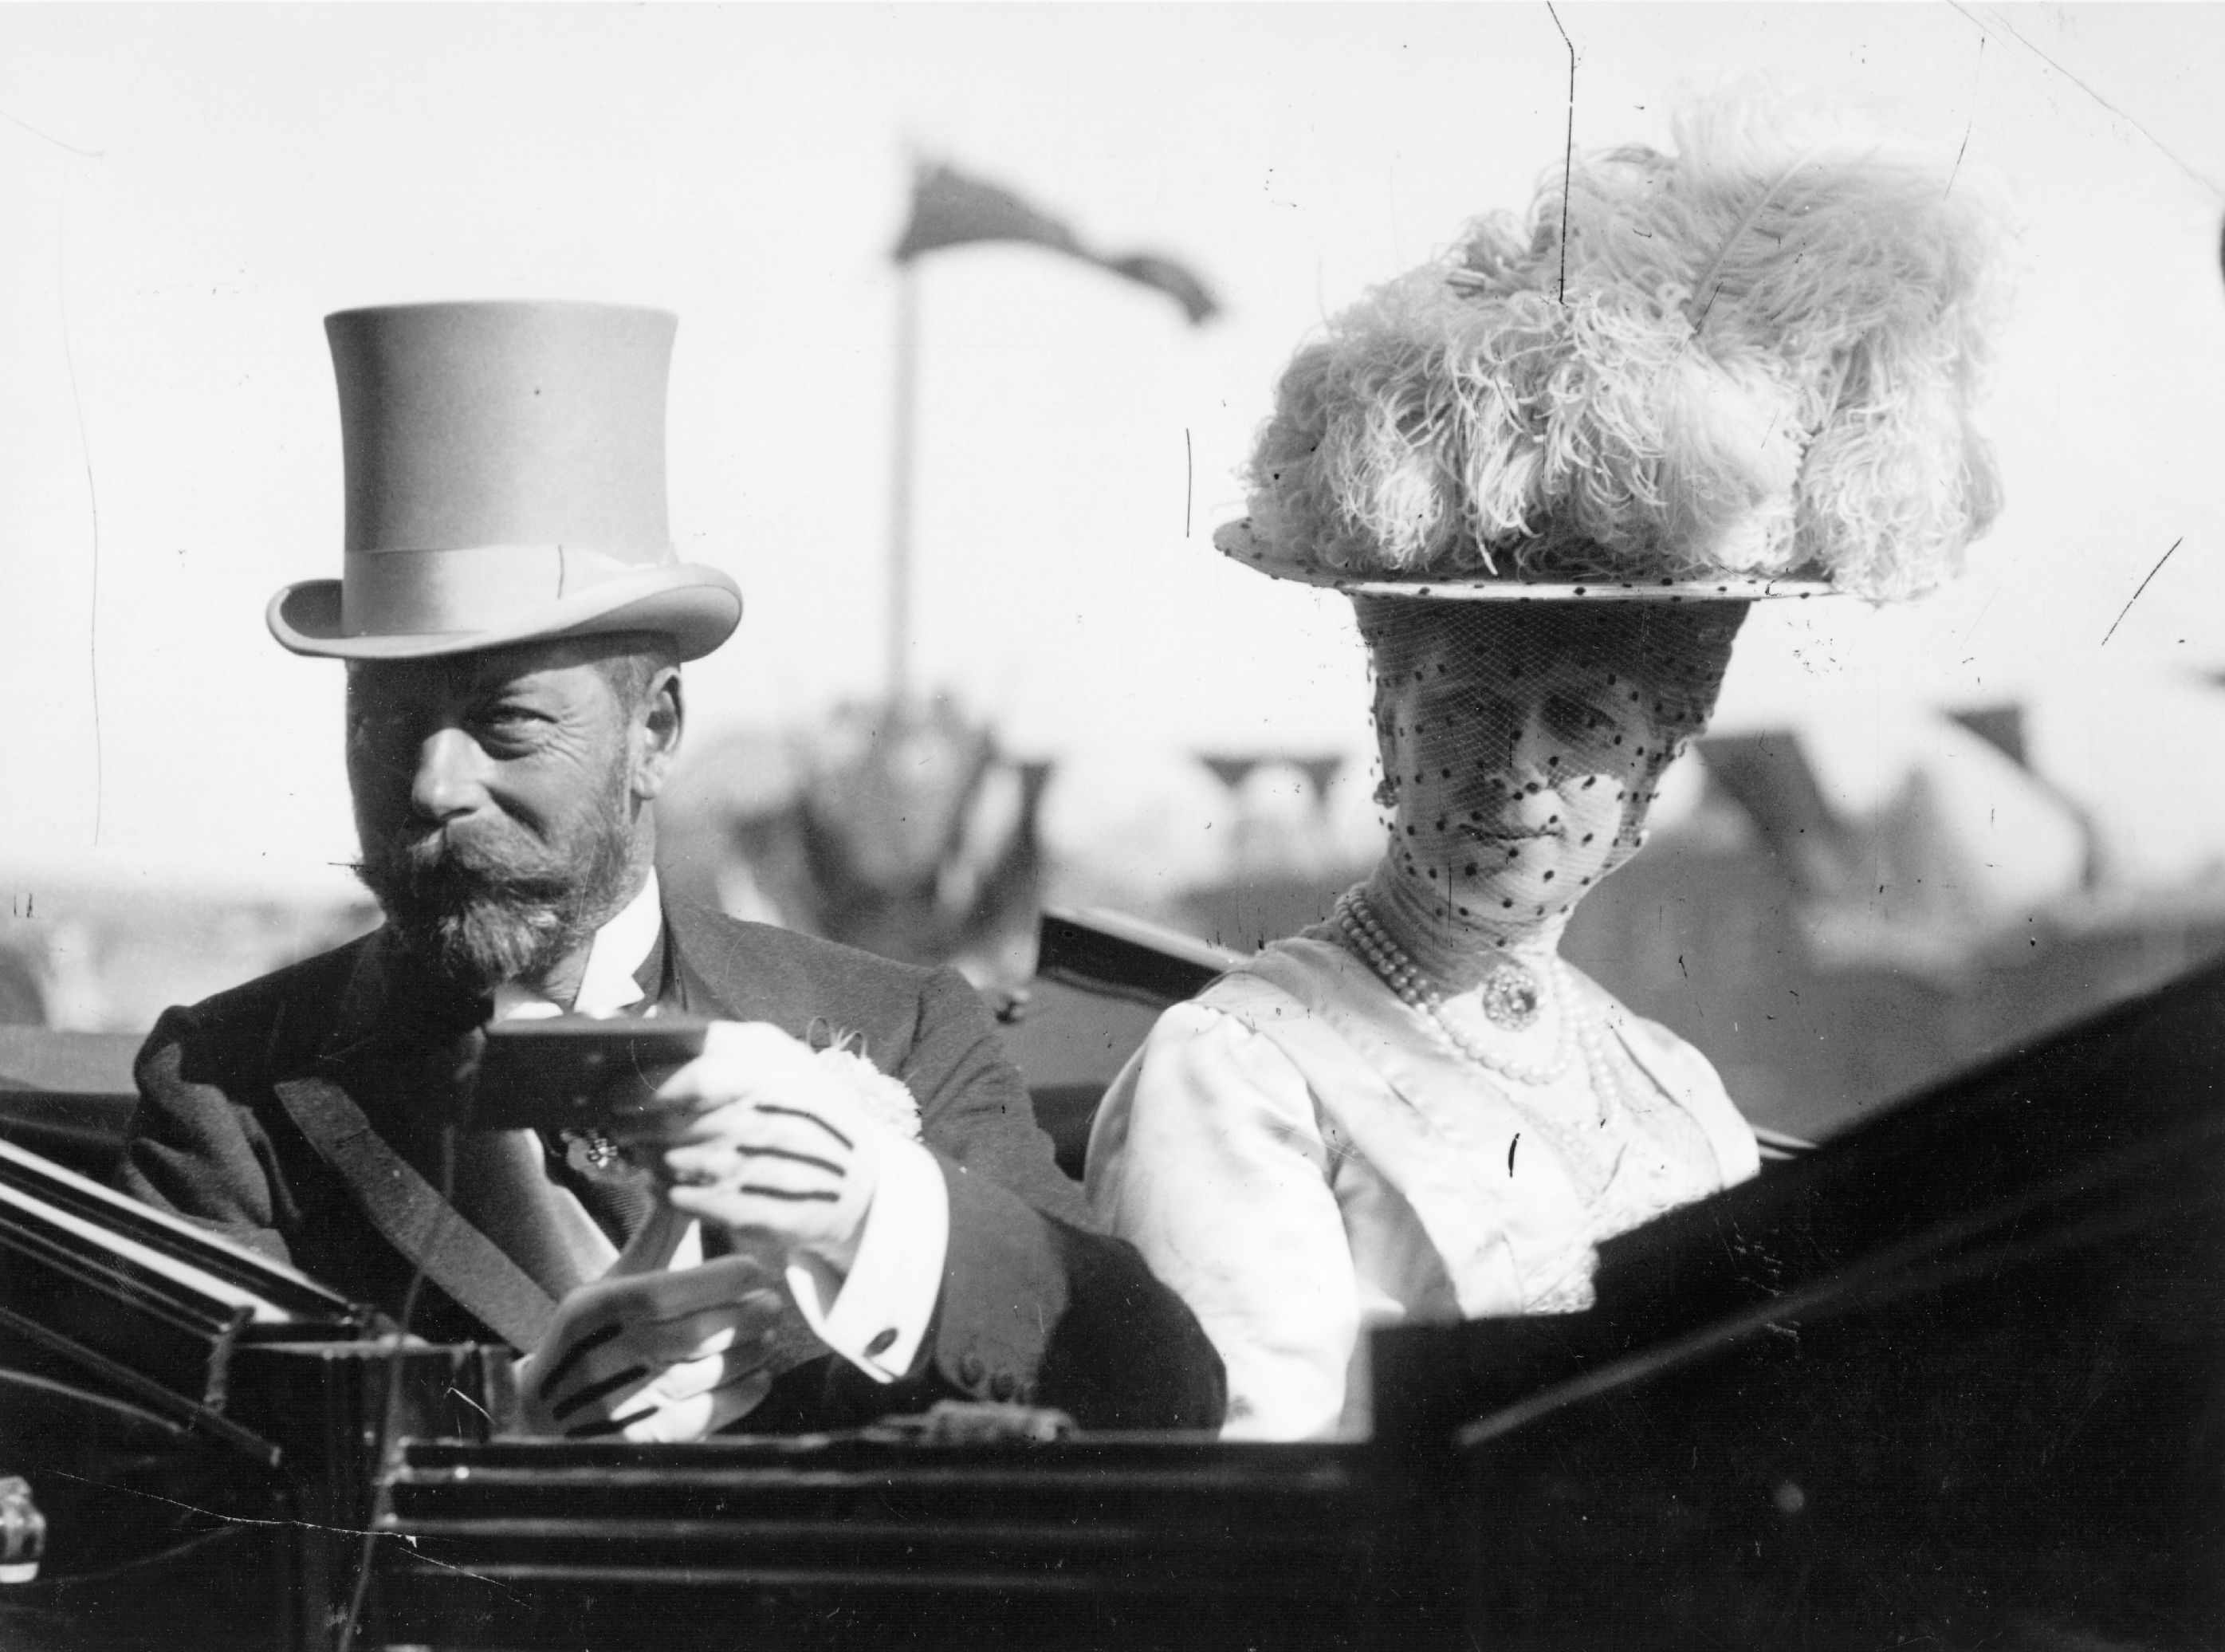 King George V and his wife, Queen Mary, pictured during a visit to Dublin in 1911. The royal couple were deeply conservative but common sense taught them they had to adapt to the modern world. (Photo by Topical Press Agency/Getty Images)